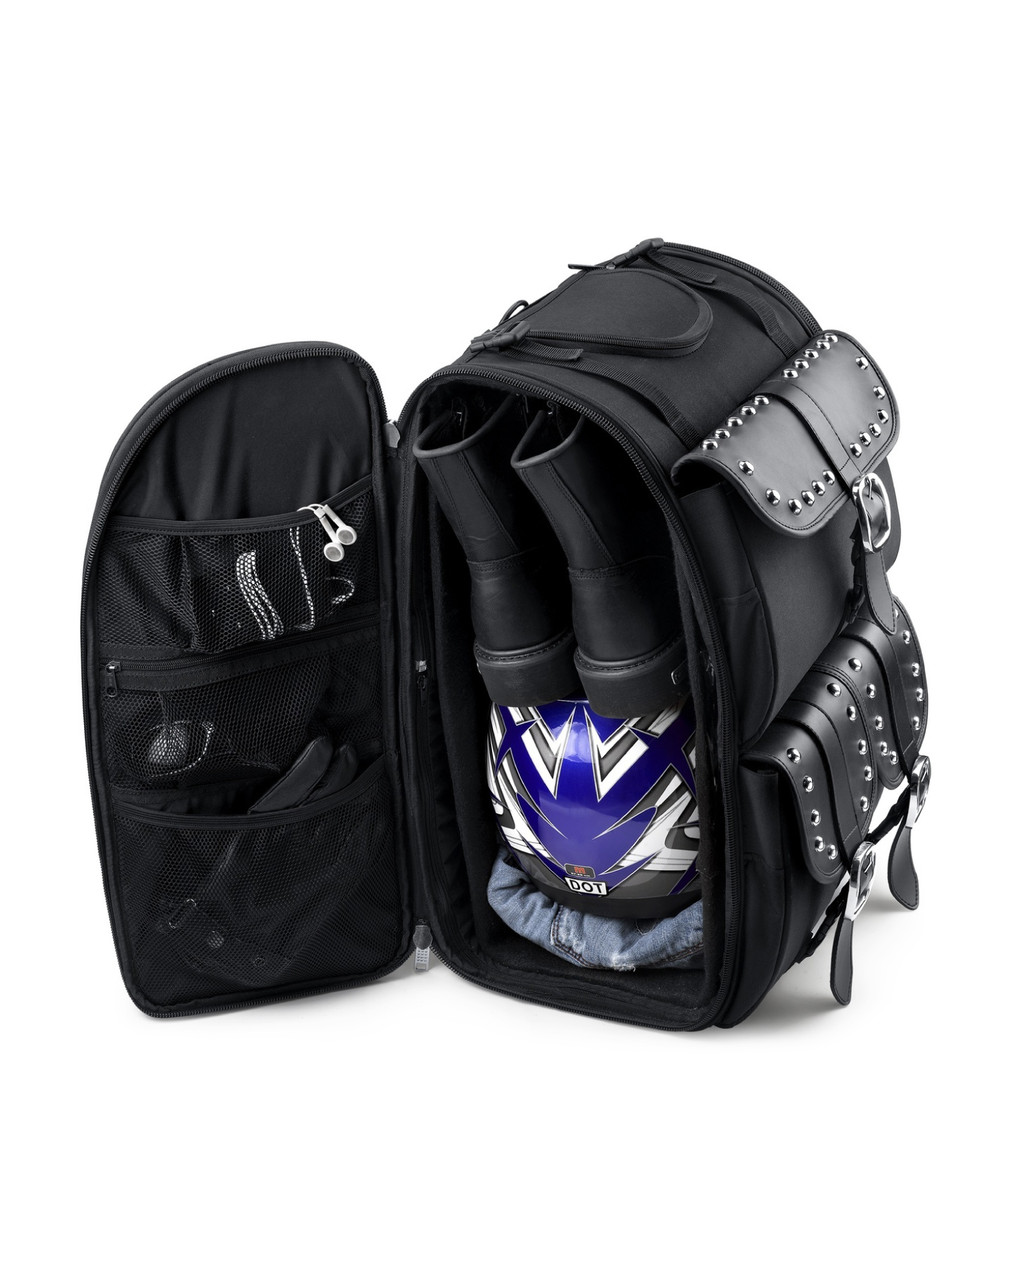 Victory Viking Extra Large Studded Motorcycle Sissy Bar Bag Storage View